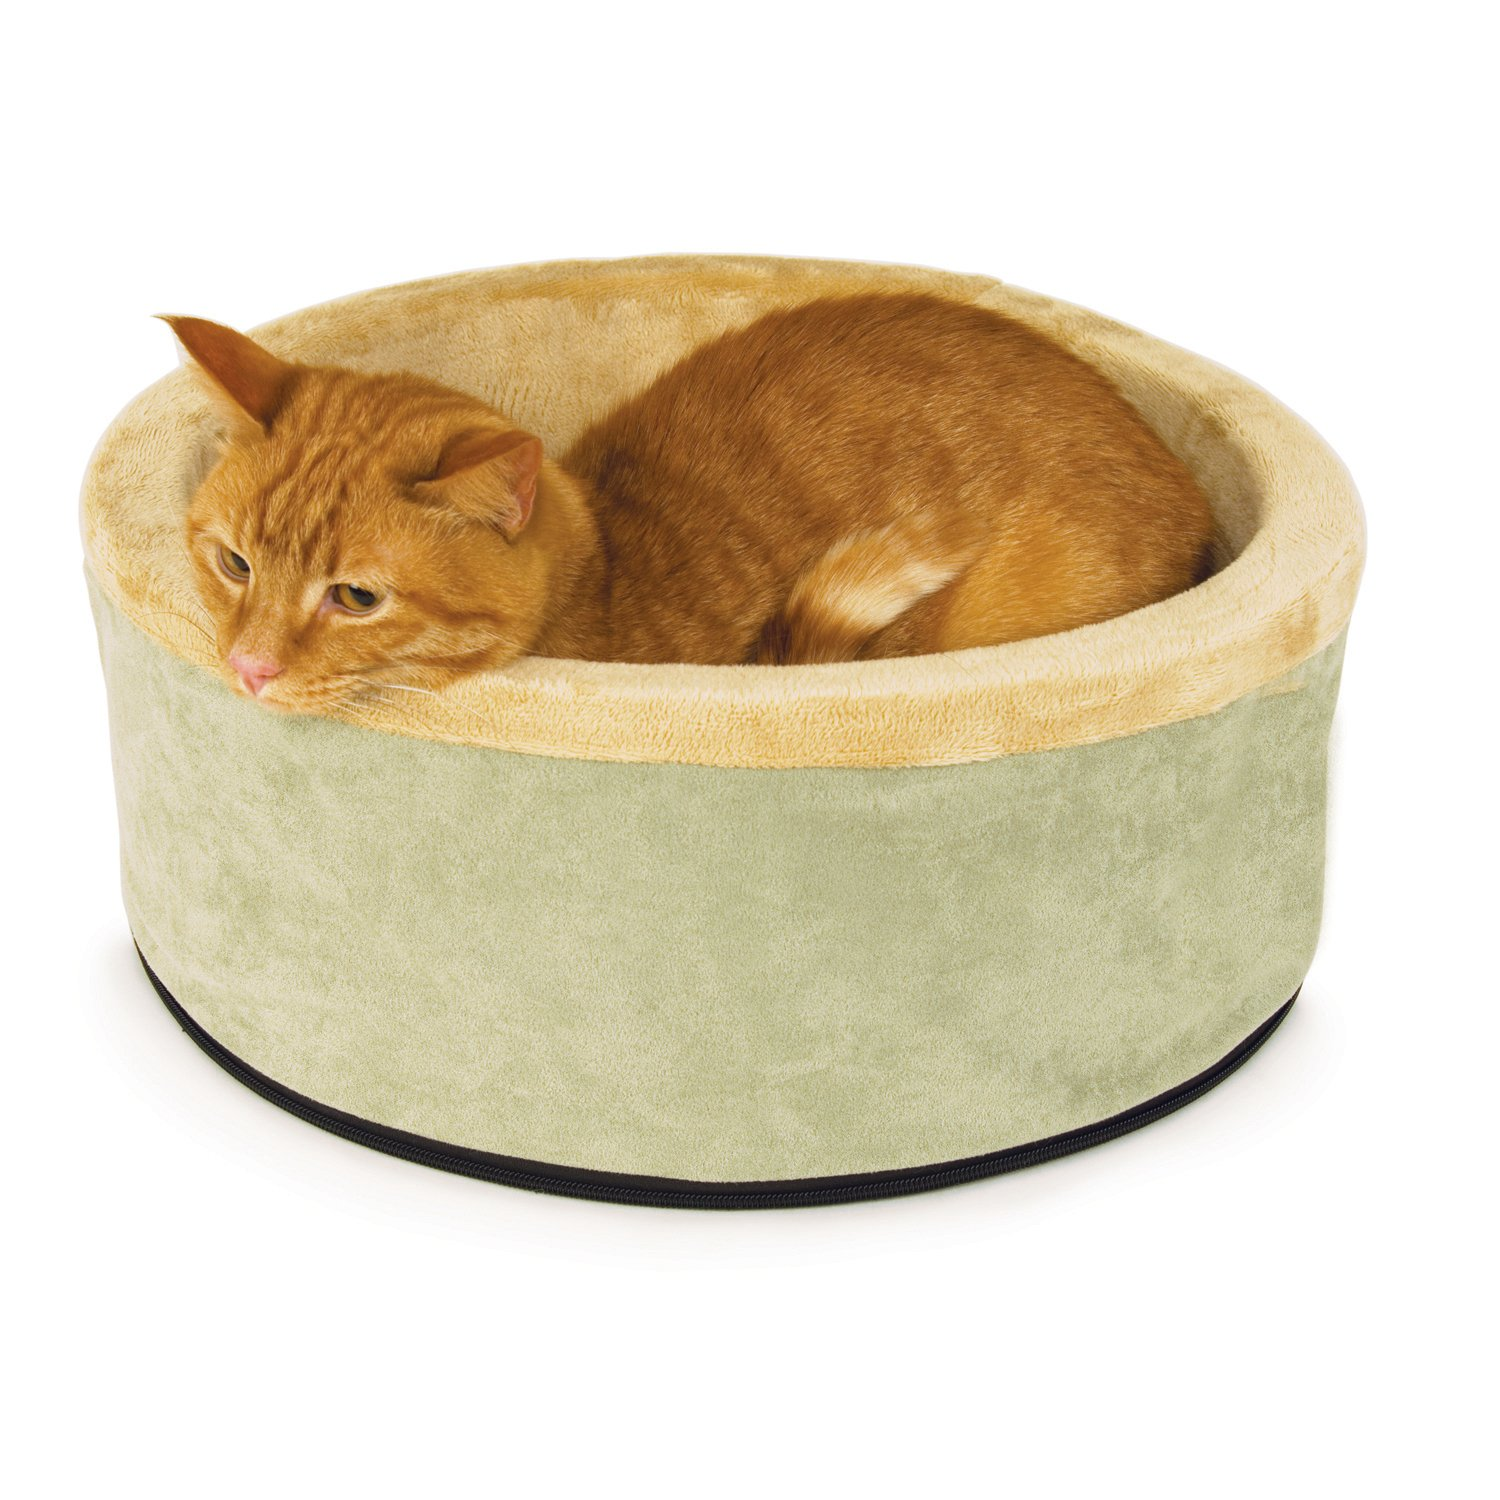 Soft Round Pet Bed for cats and dogs